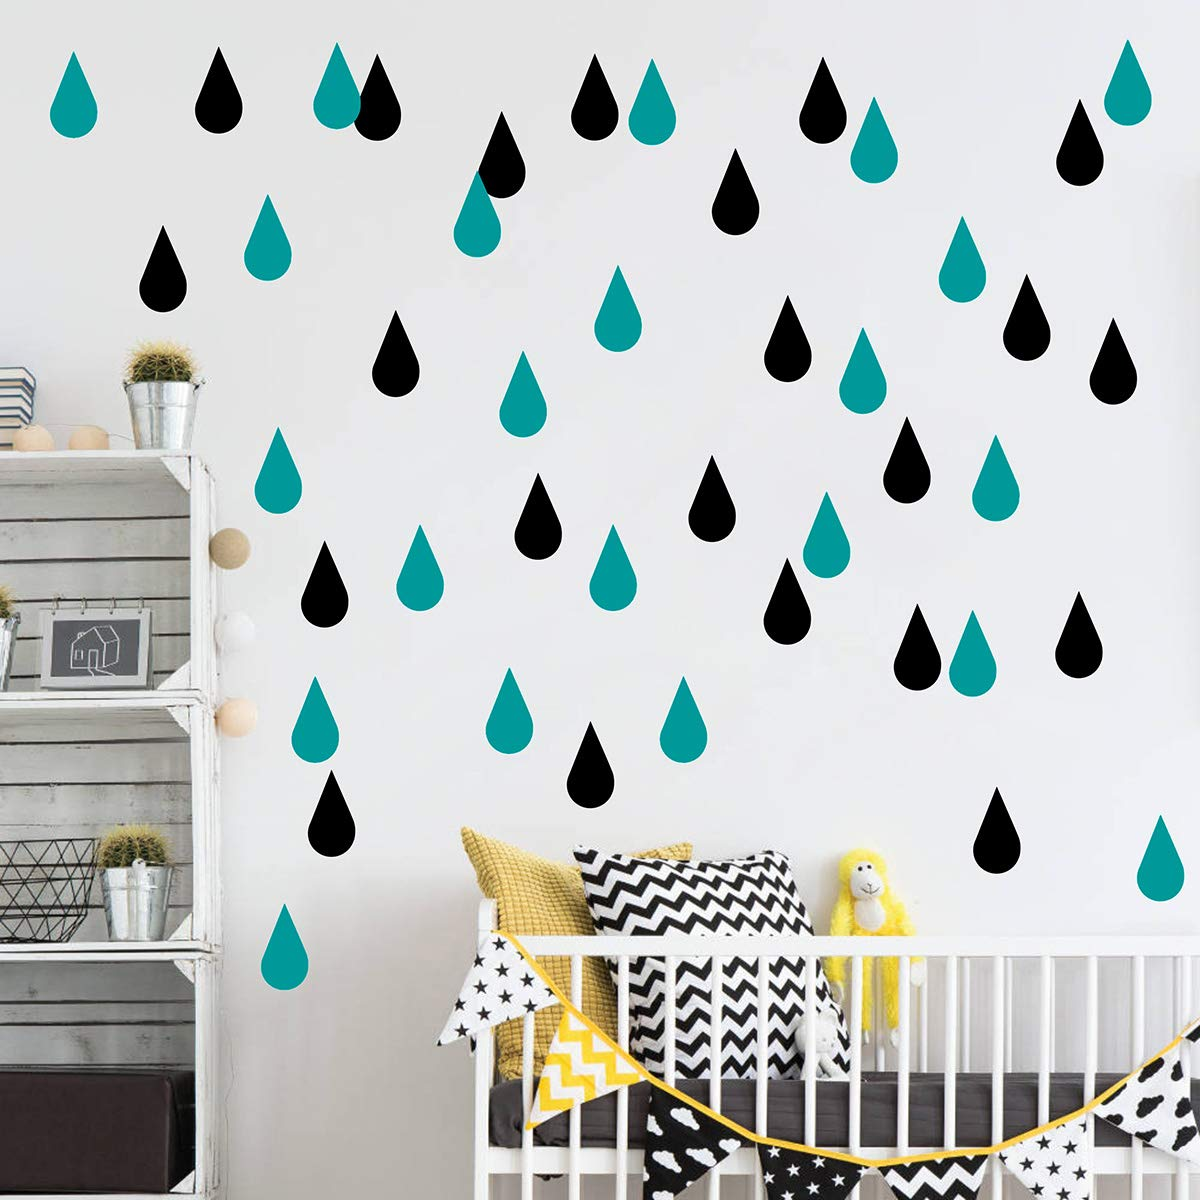 JUEKUI Water Droplets Wall Decals Raindrop Wall Sticker Removable Wall Decor Easy Peel Stick Girls Bedroom Nursery Bedroom Home Decor WS43 (Black + Teal)